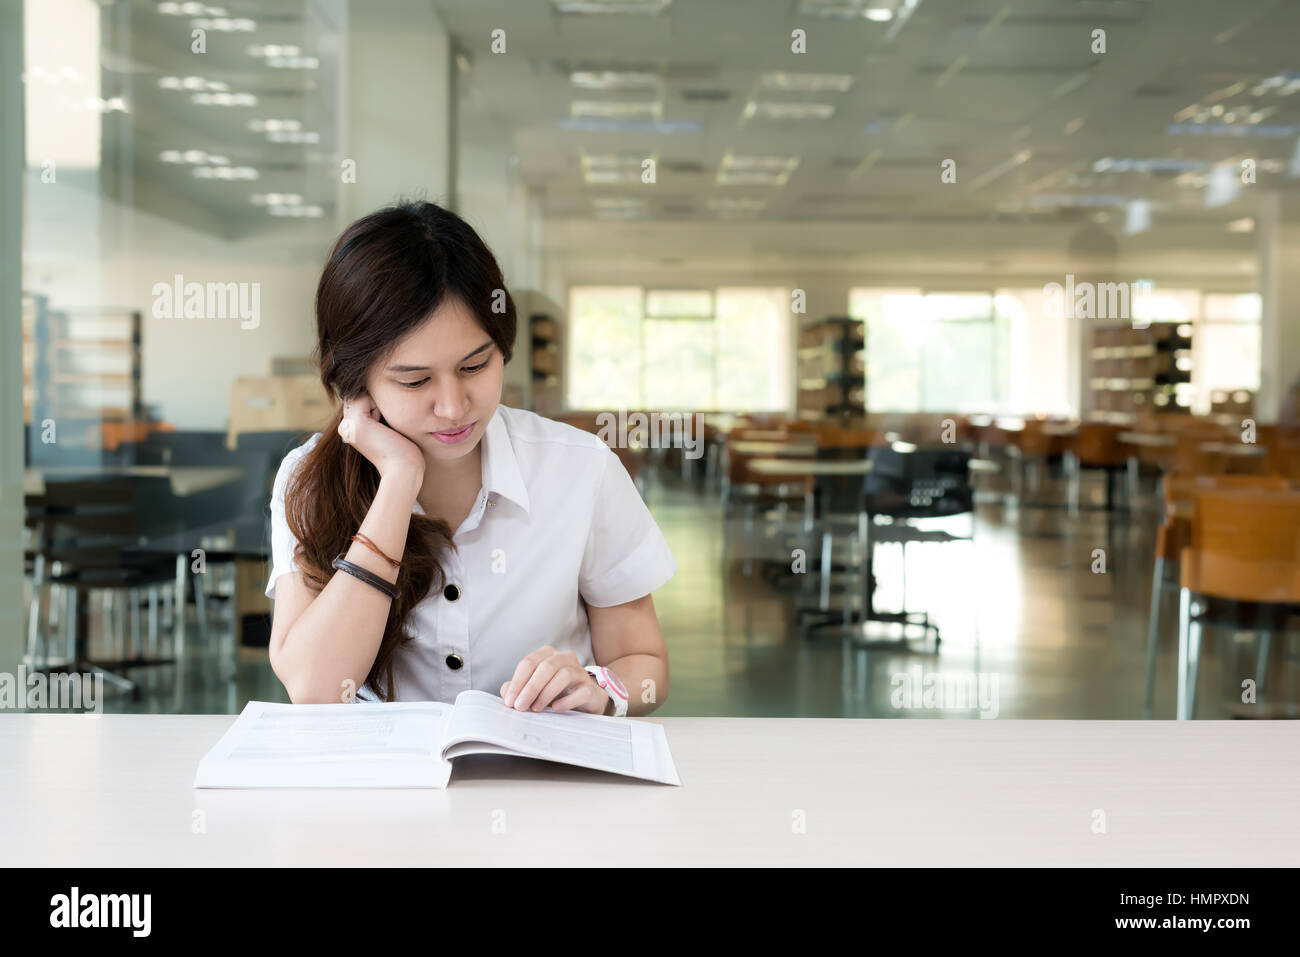 Asian student in uniform reading book in classroom at university. Stock Photo